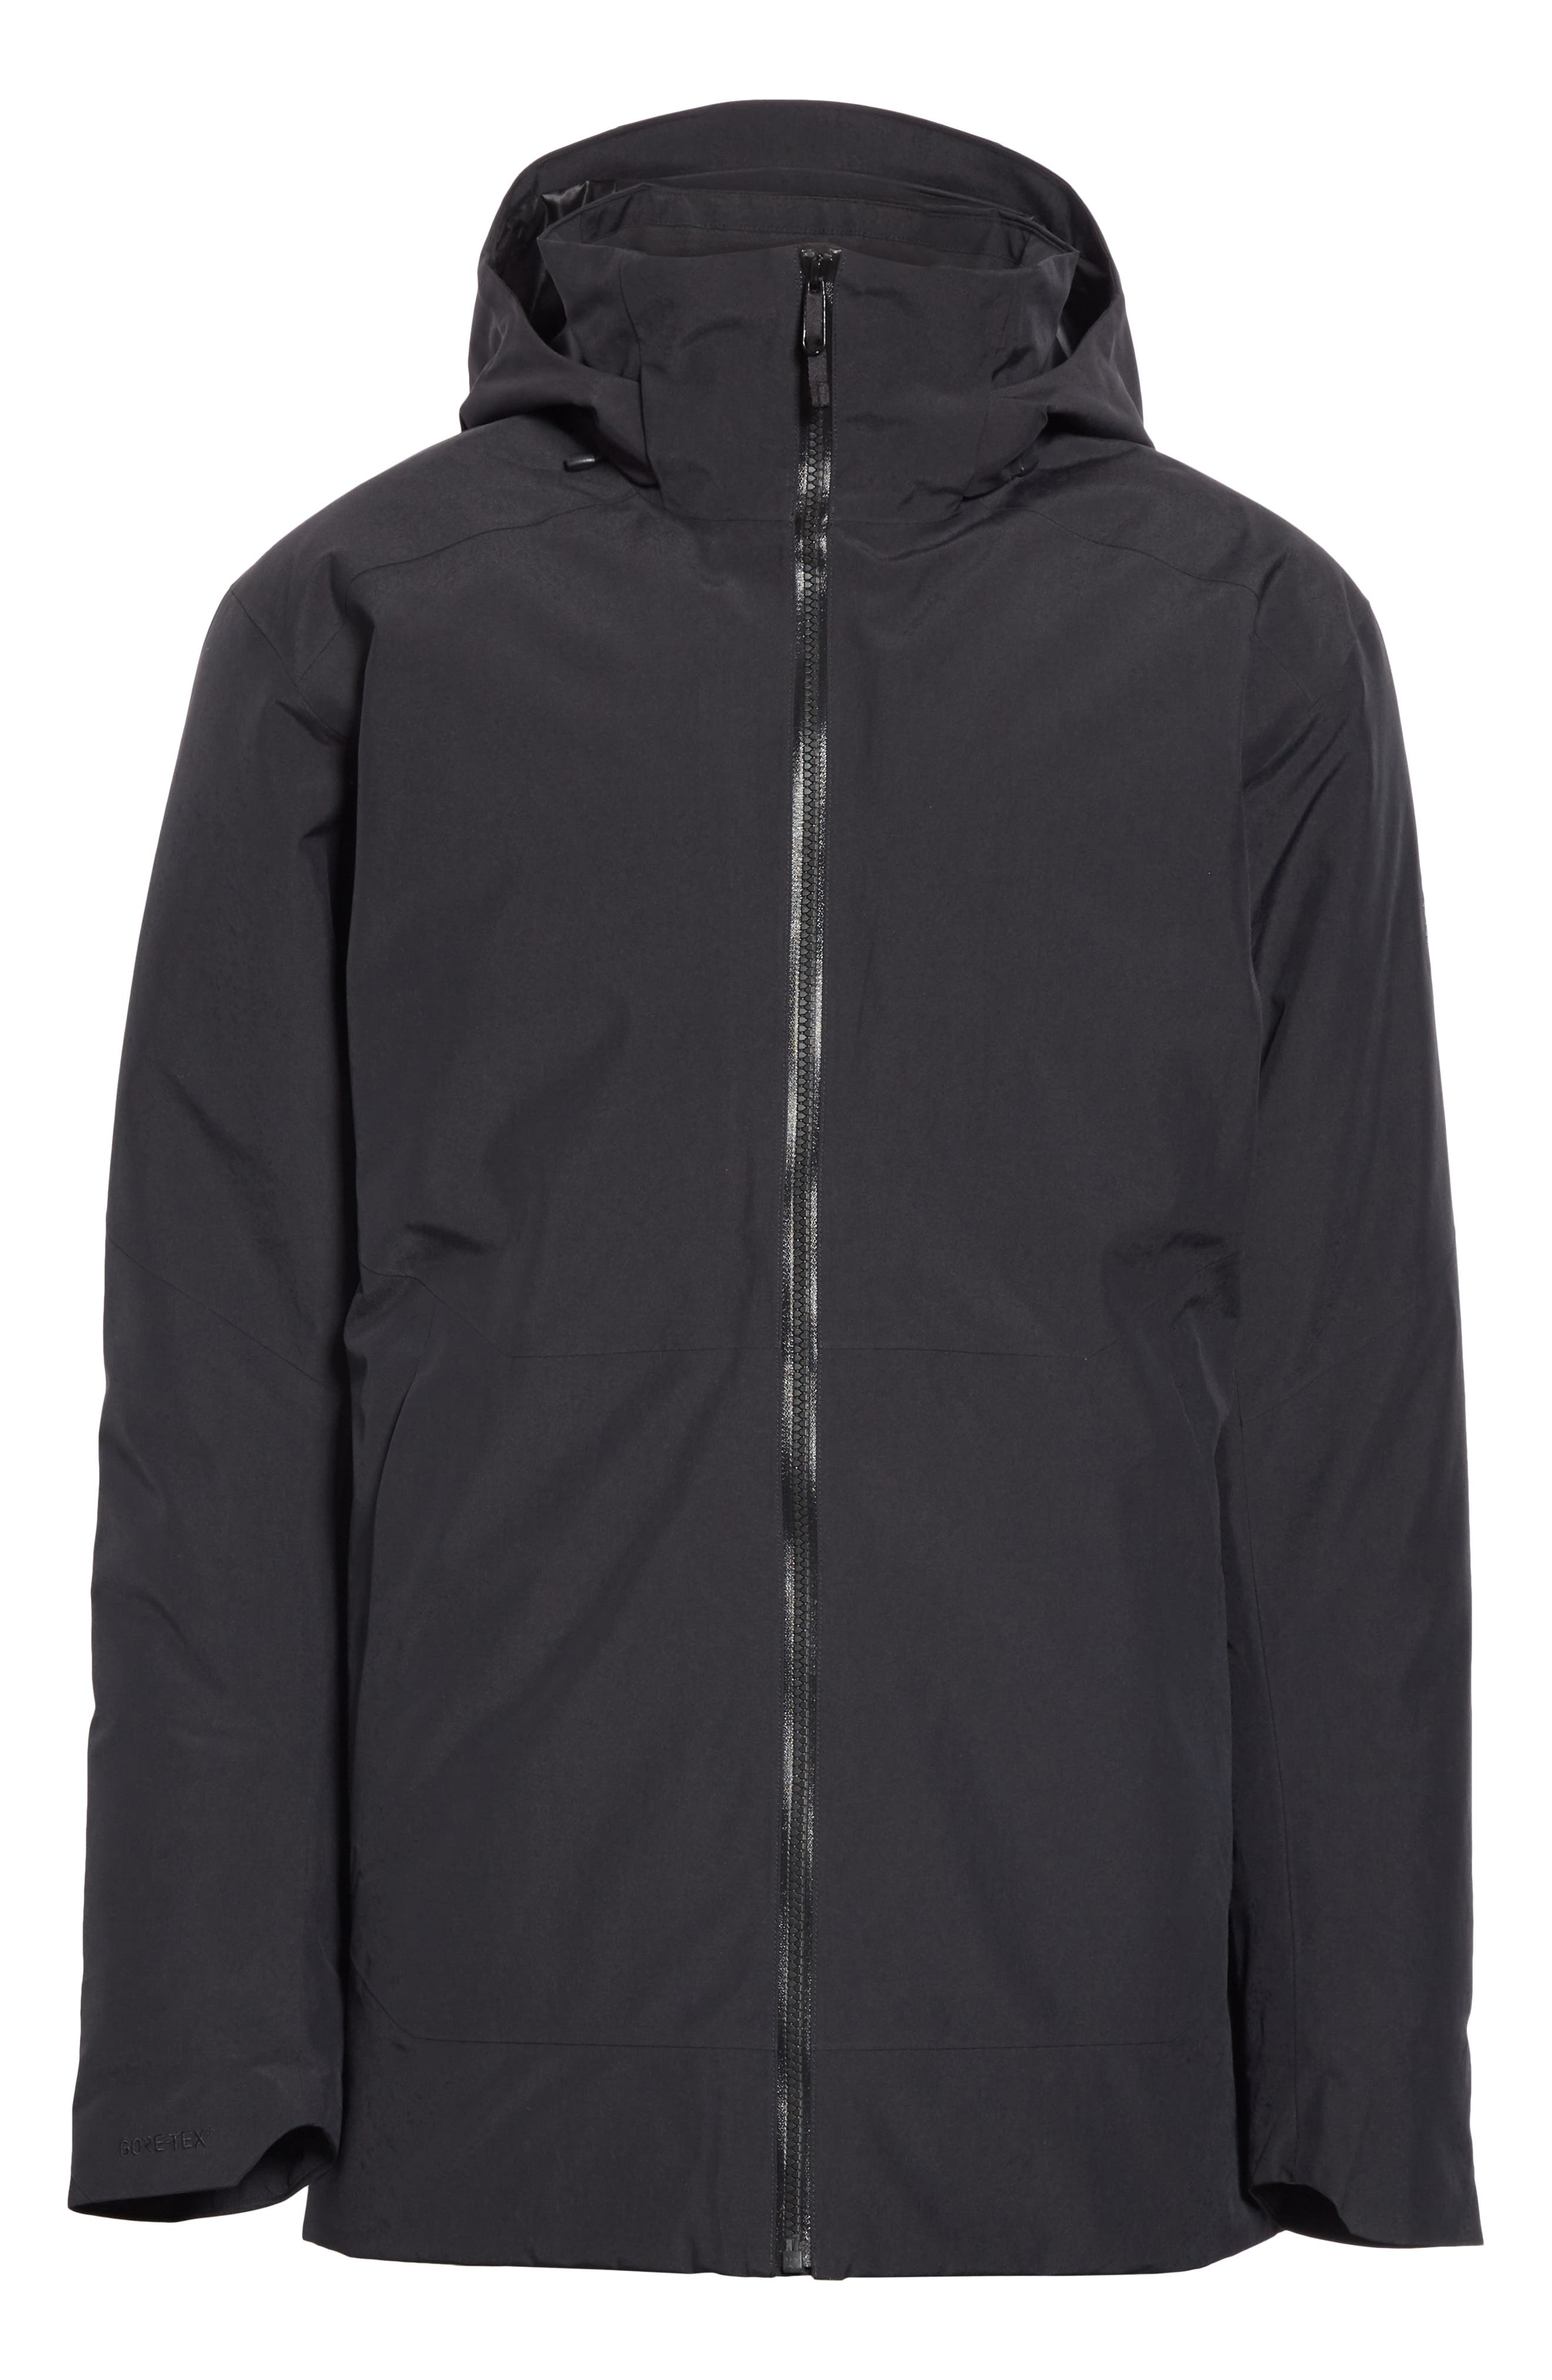 ARC'TERYX Camosun Men's Parka with Removable Hood, Main, color, BLACK